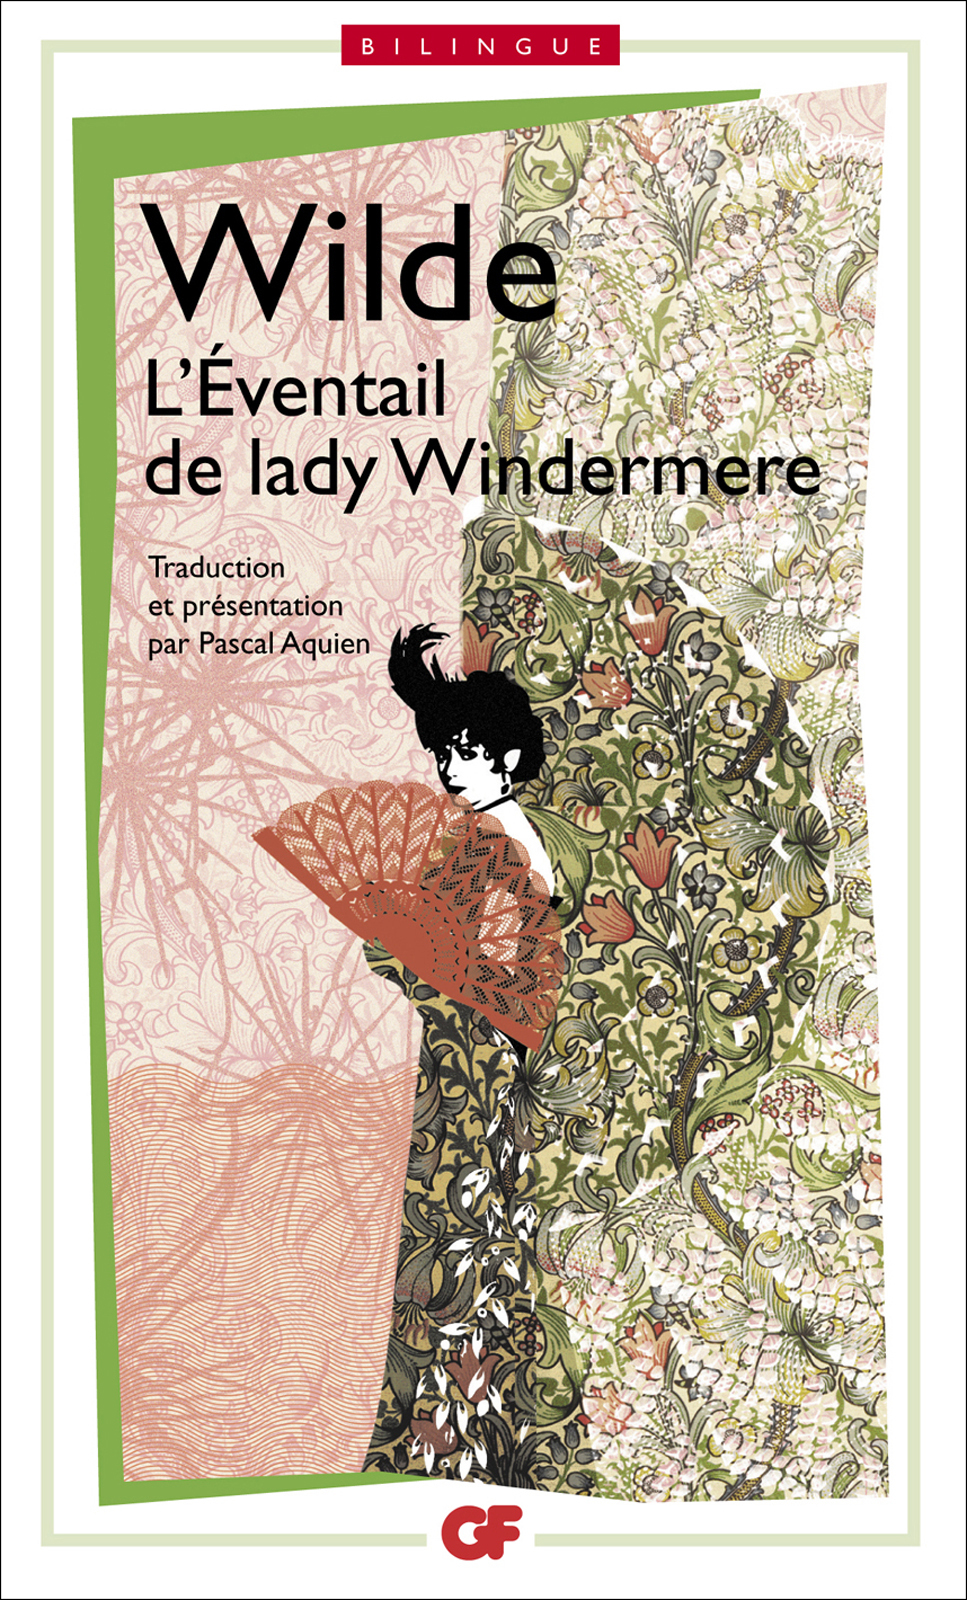 L'Eventail de Lady Windermere / Lady Windermere's fan, édition bilingue